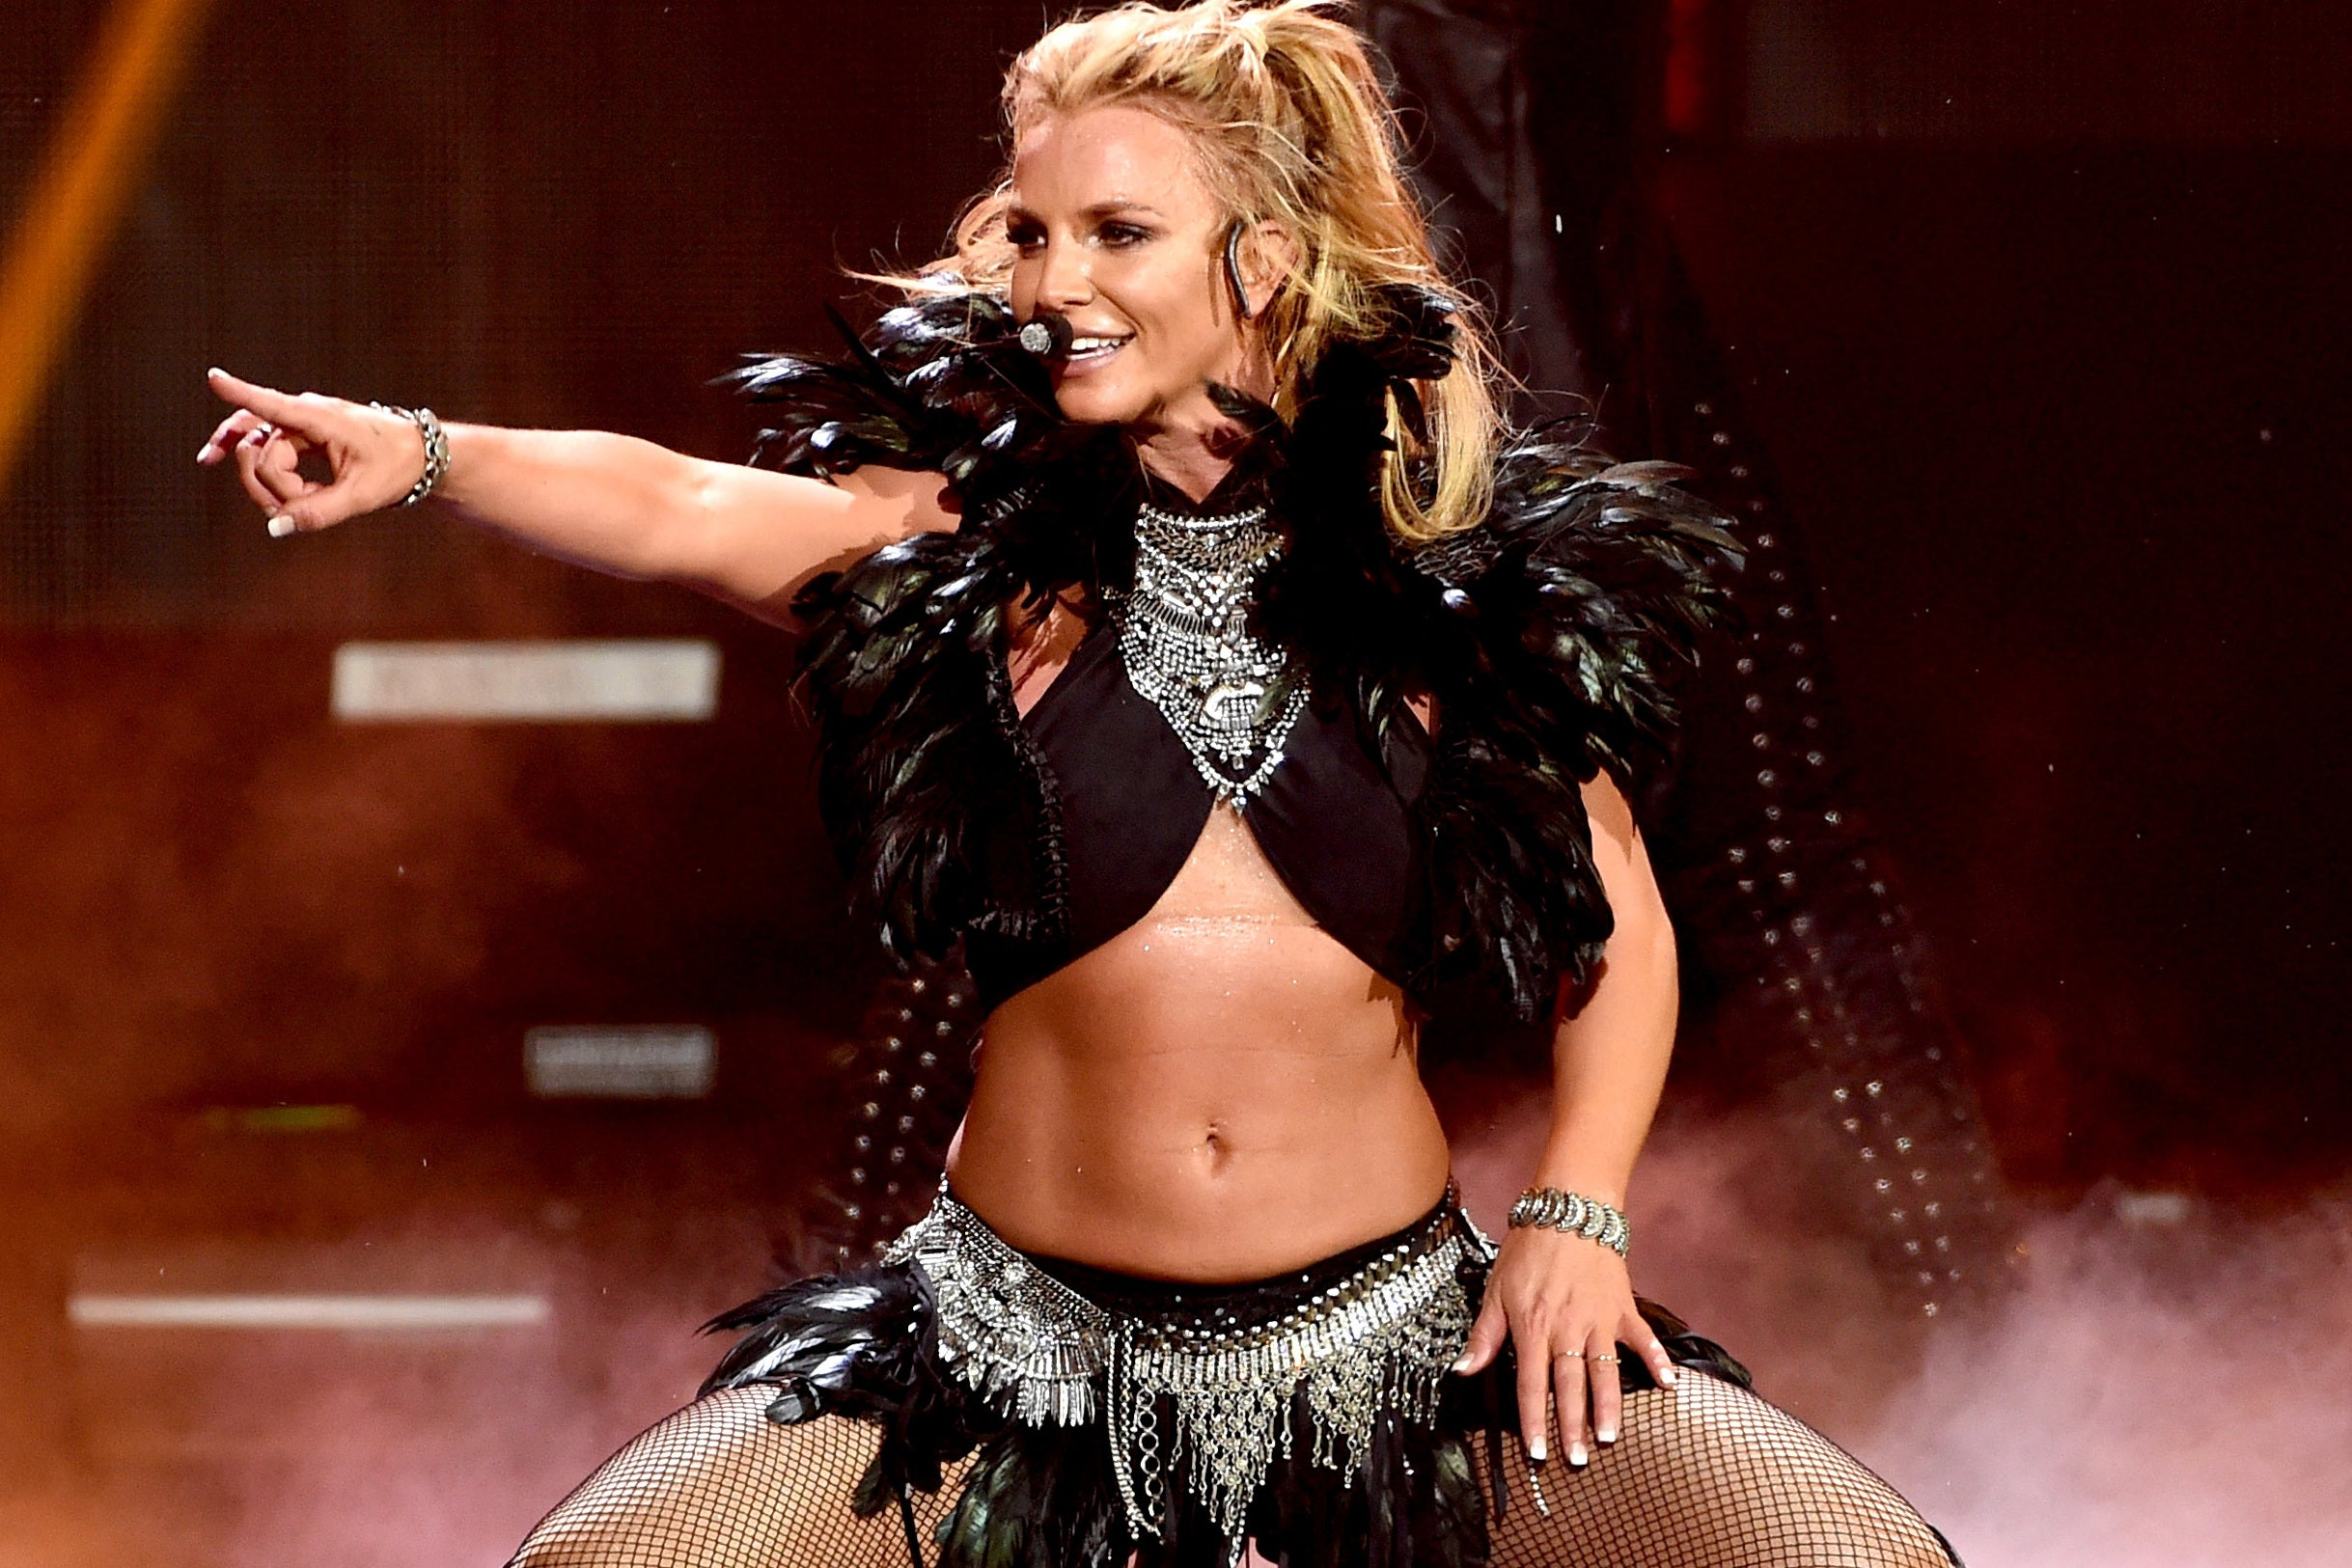 Britney spears dating oct 2019